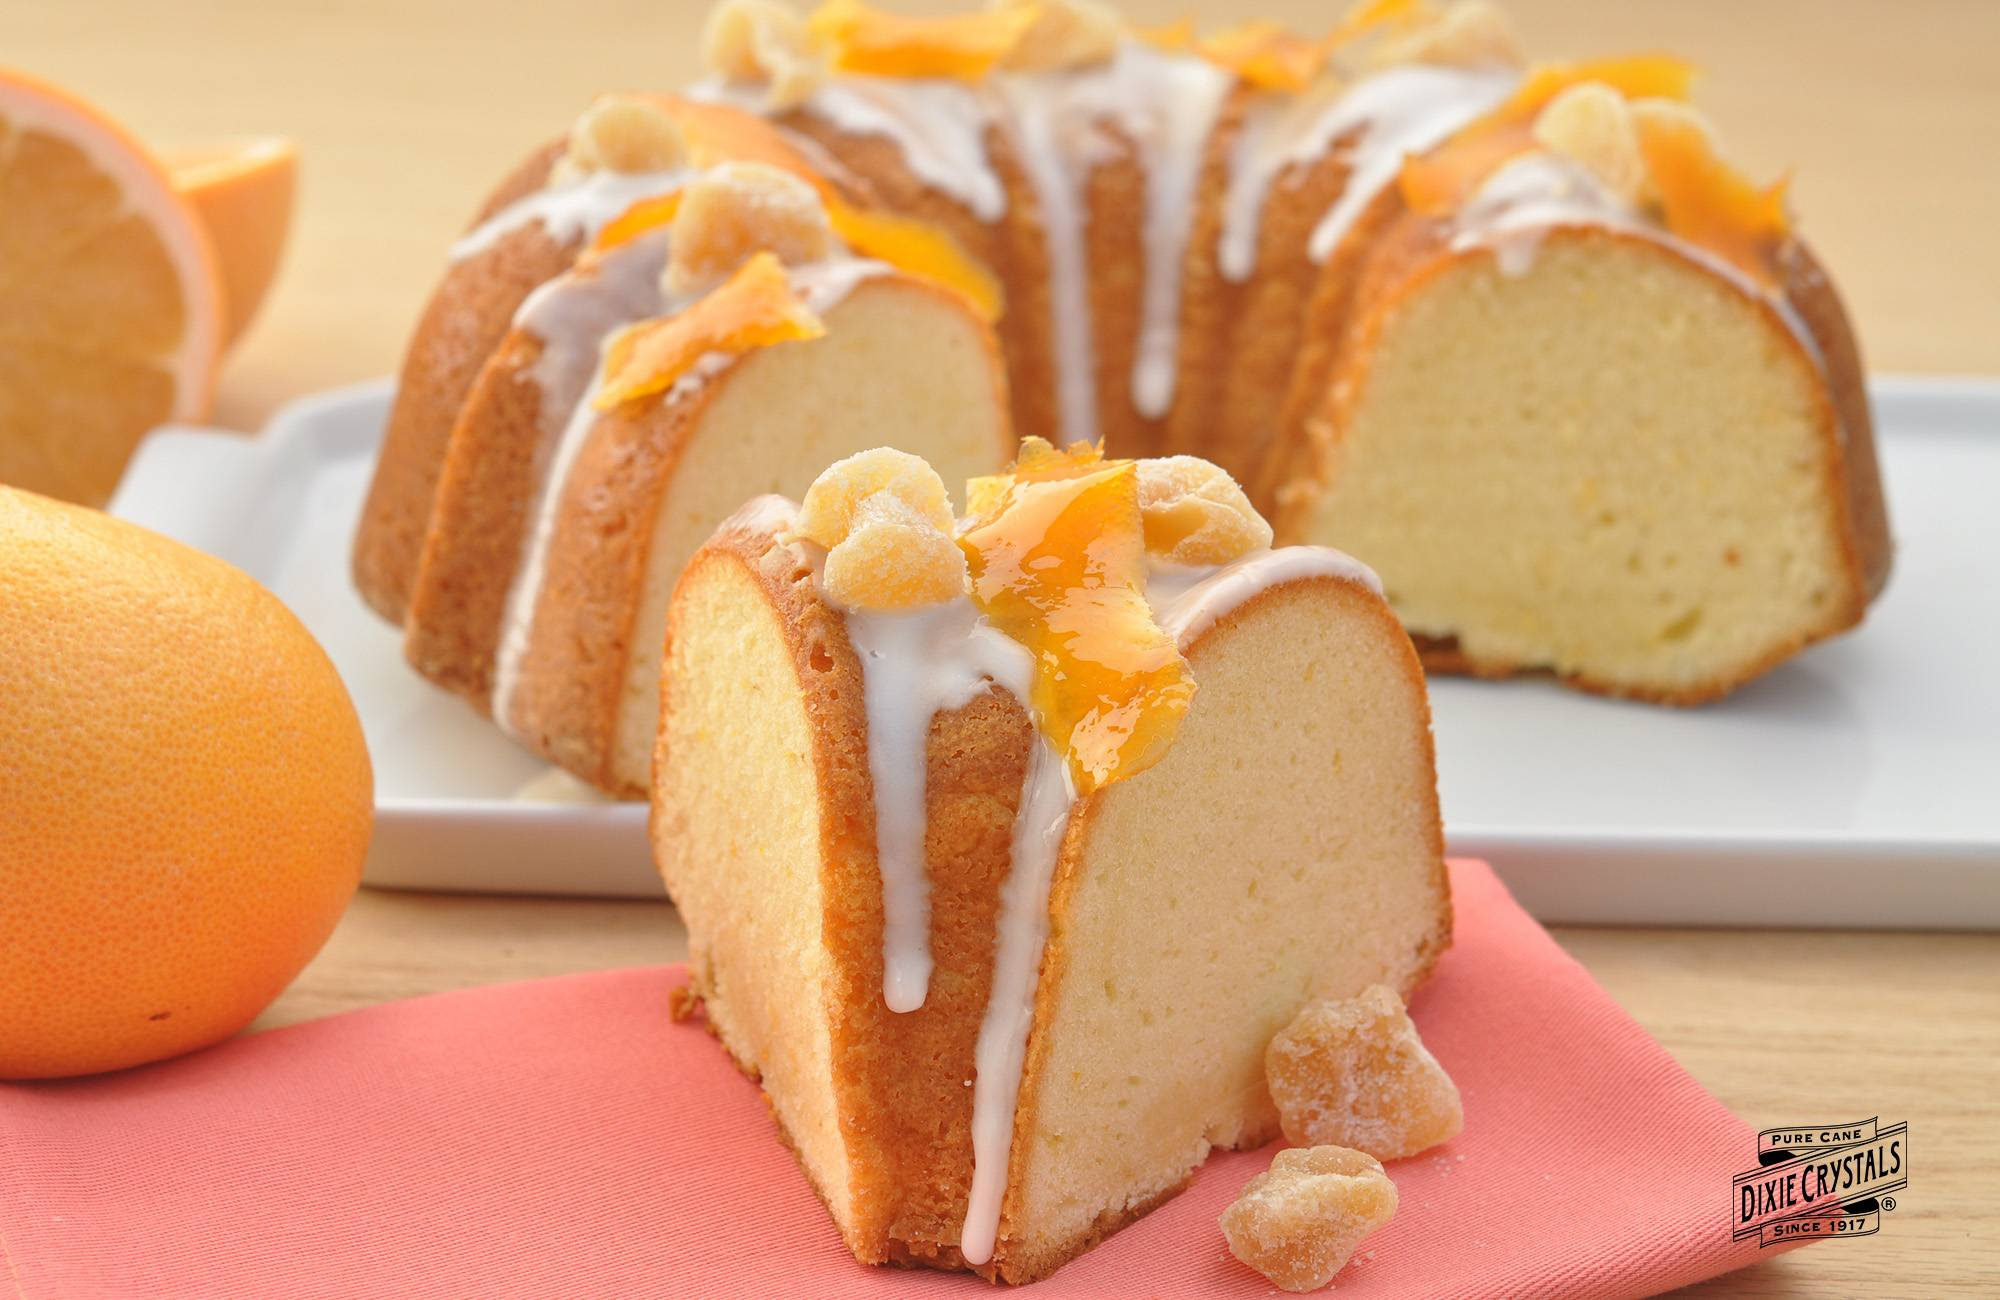 Ginger and grapefruit pound cake